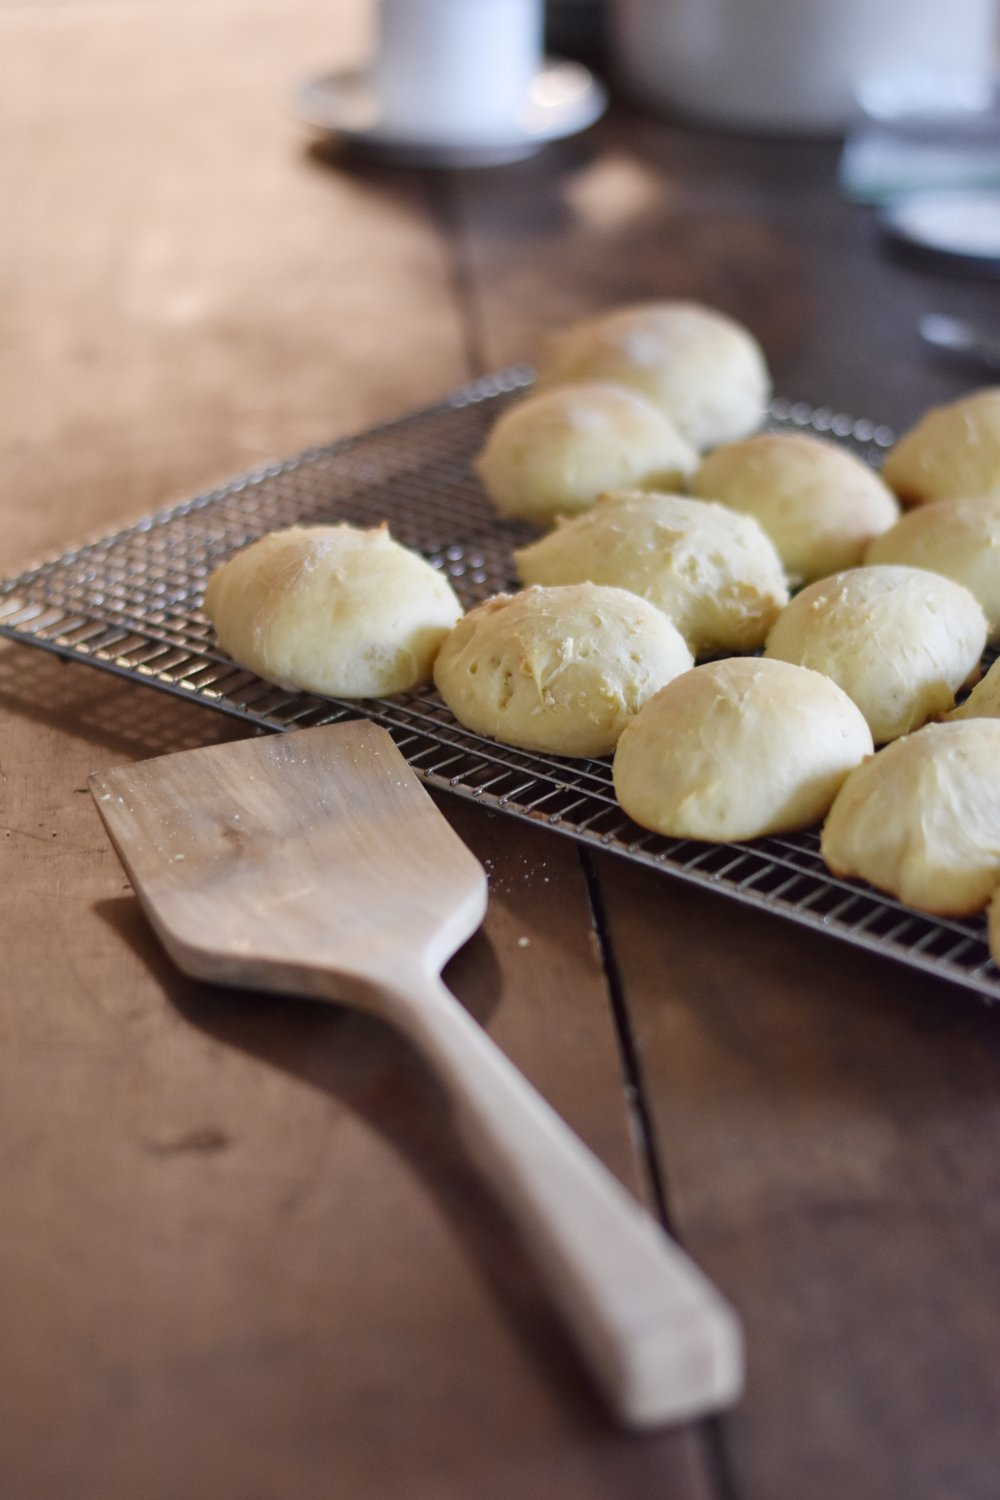 The very best homemade soft and easy yeast rolls. Homemade from scratch bread rolls